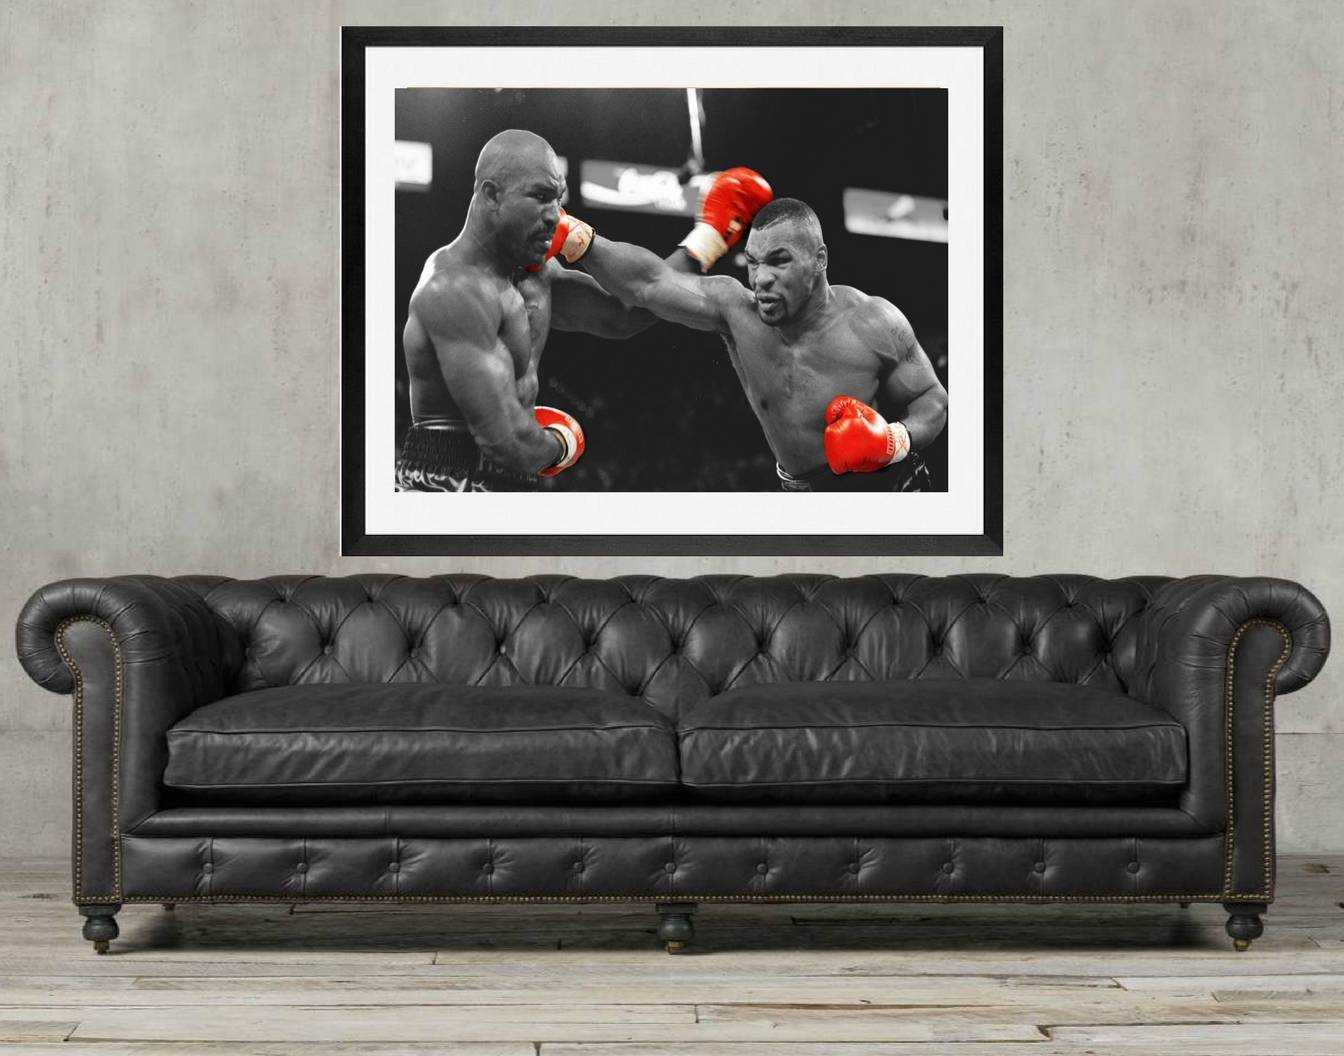 Mike tyson Portrait or Mike Tyson vs Holyfield Boxing Fighter Wall Mural on Canvas, Framed art print or poster